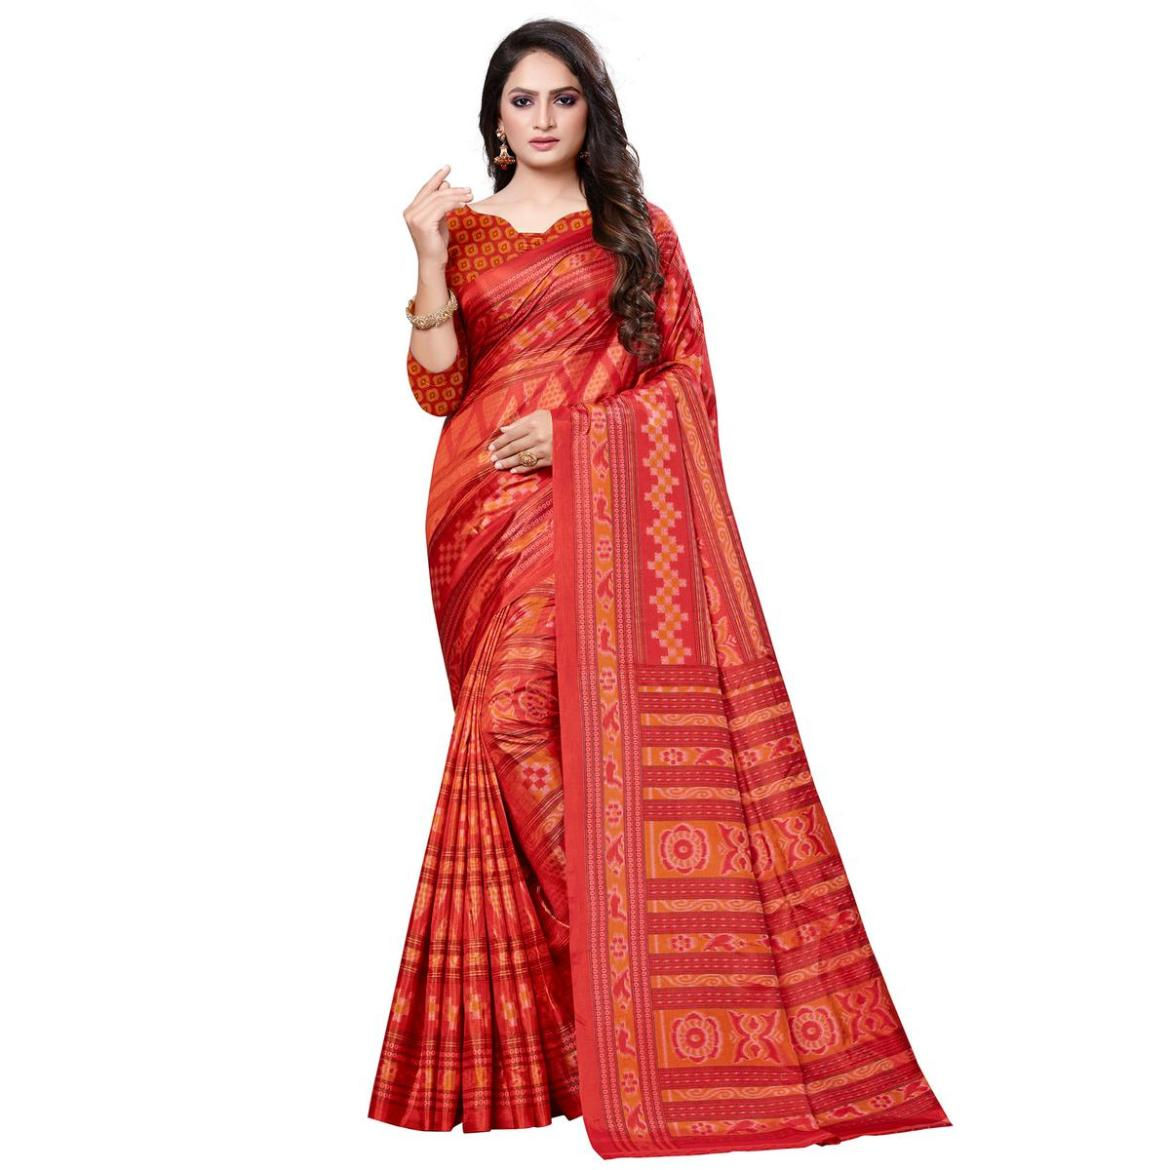 Exclusive Red Colored Casual Printed Art Silk Saree